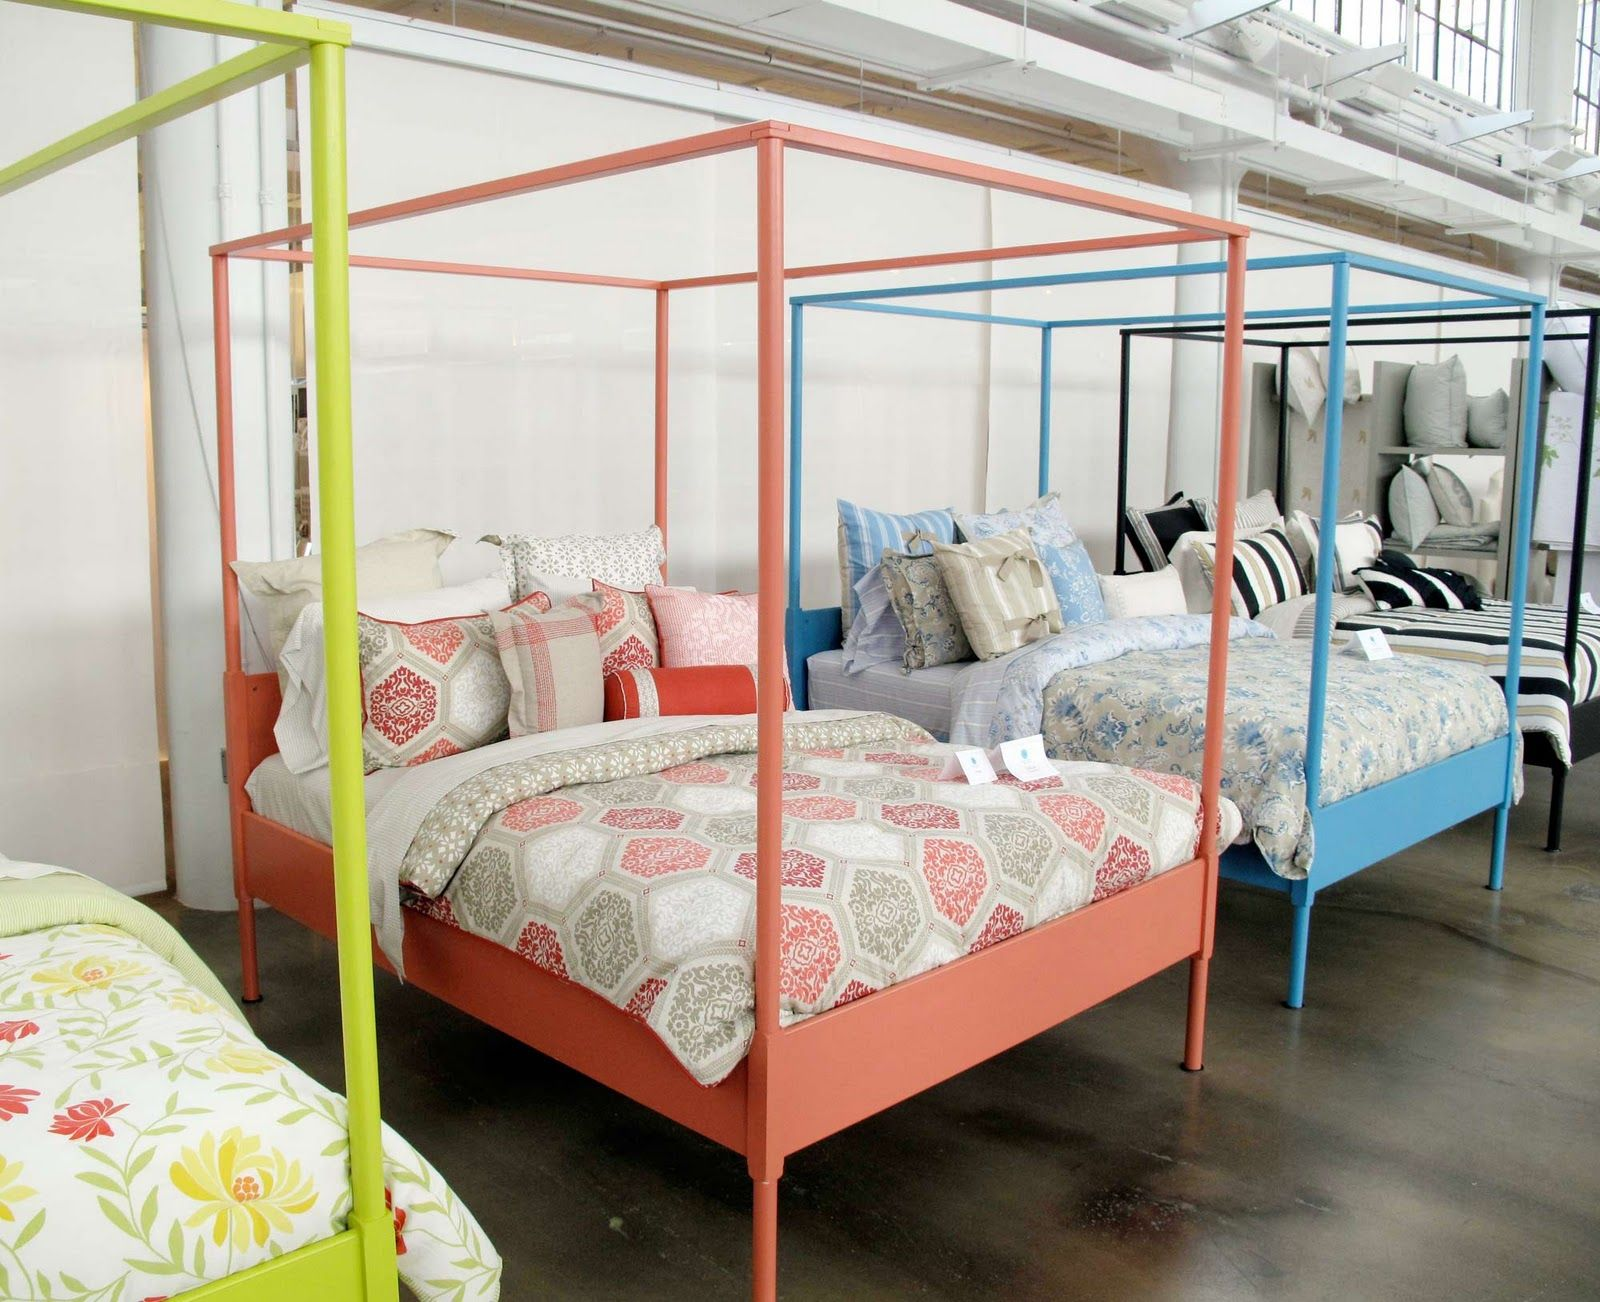 Ikeas Edland bed fram painted in a rainbow of hues by Martha